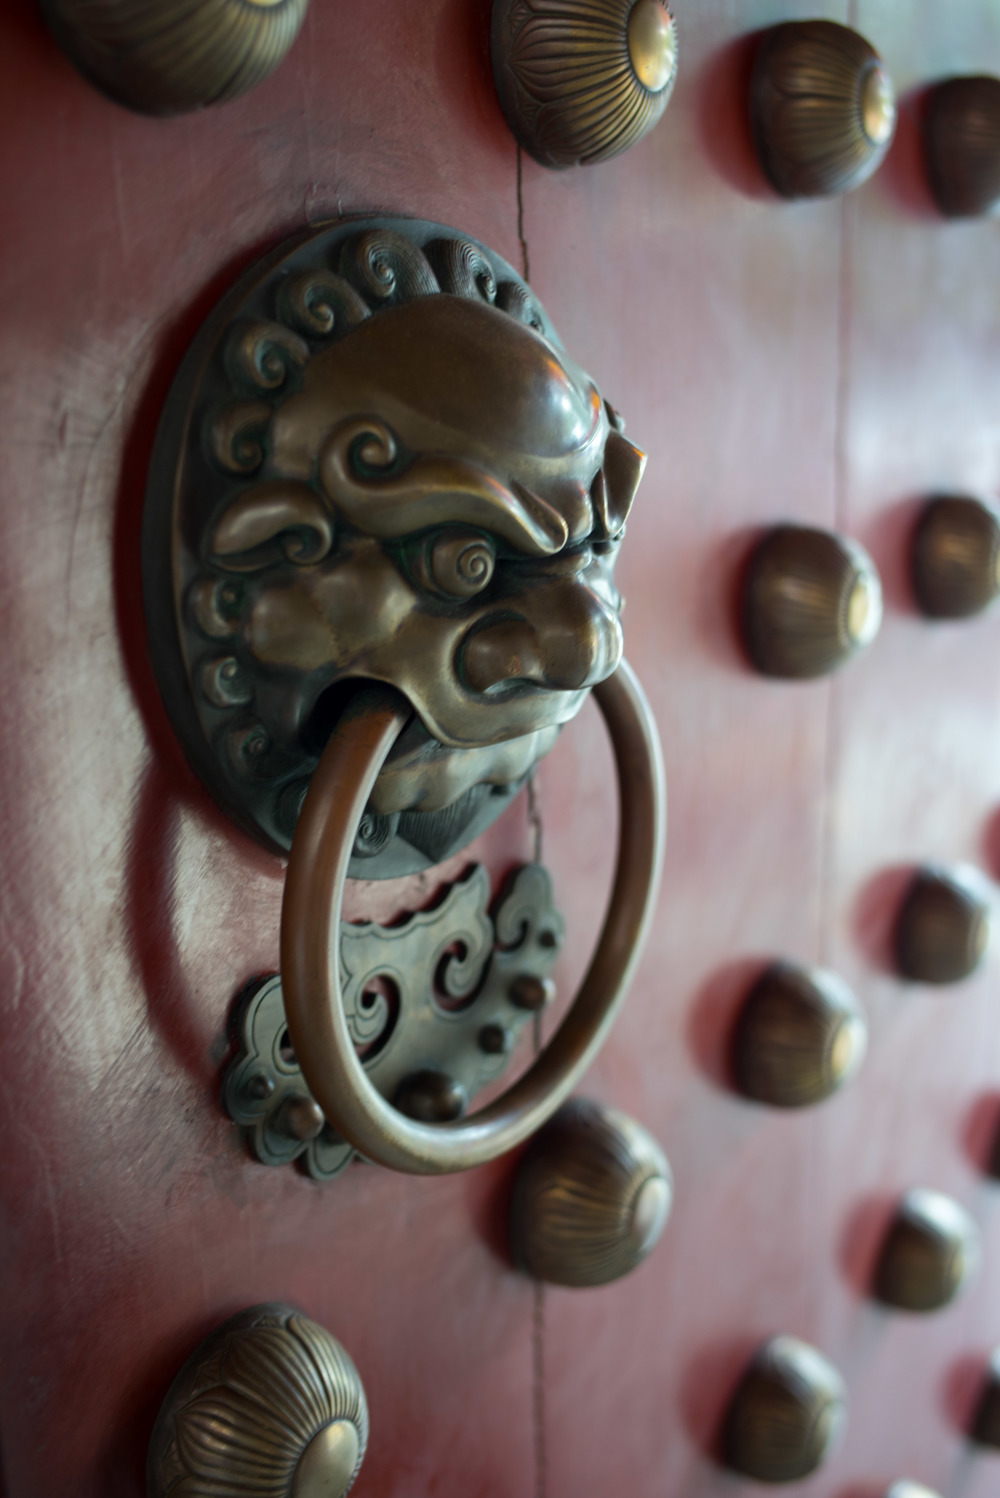 Door knocker to buddhist temple in Singapore